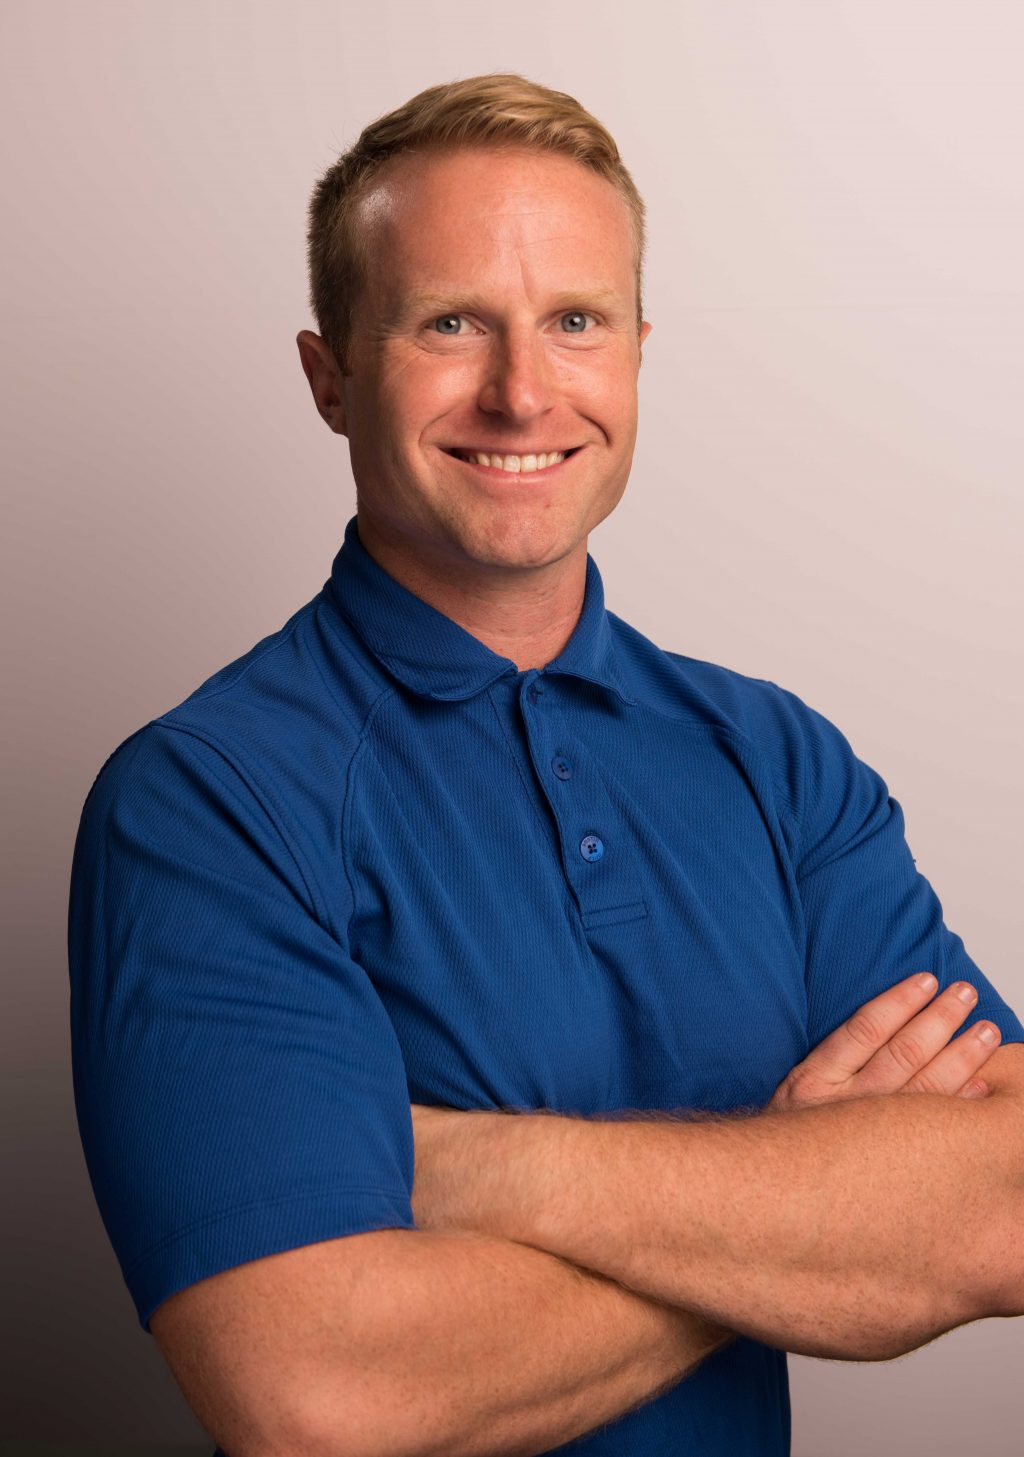 Personal Trainer Dallas, Texas - Robbie Birdwell